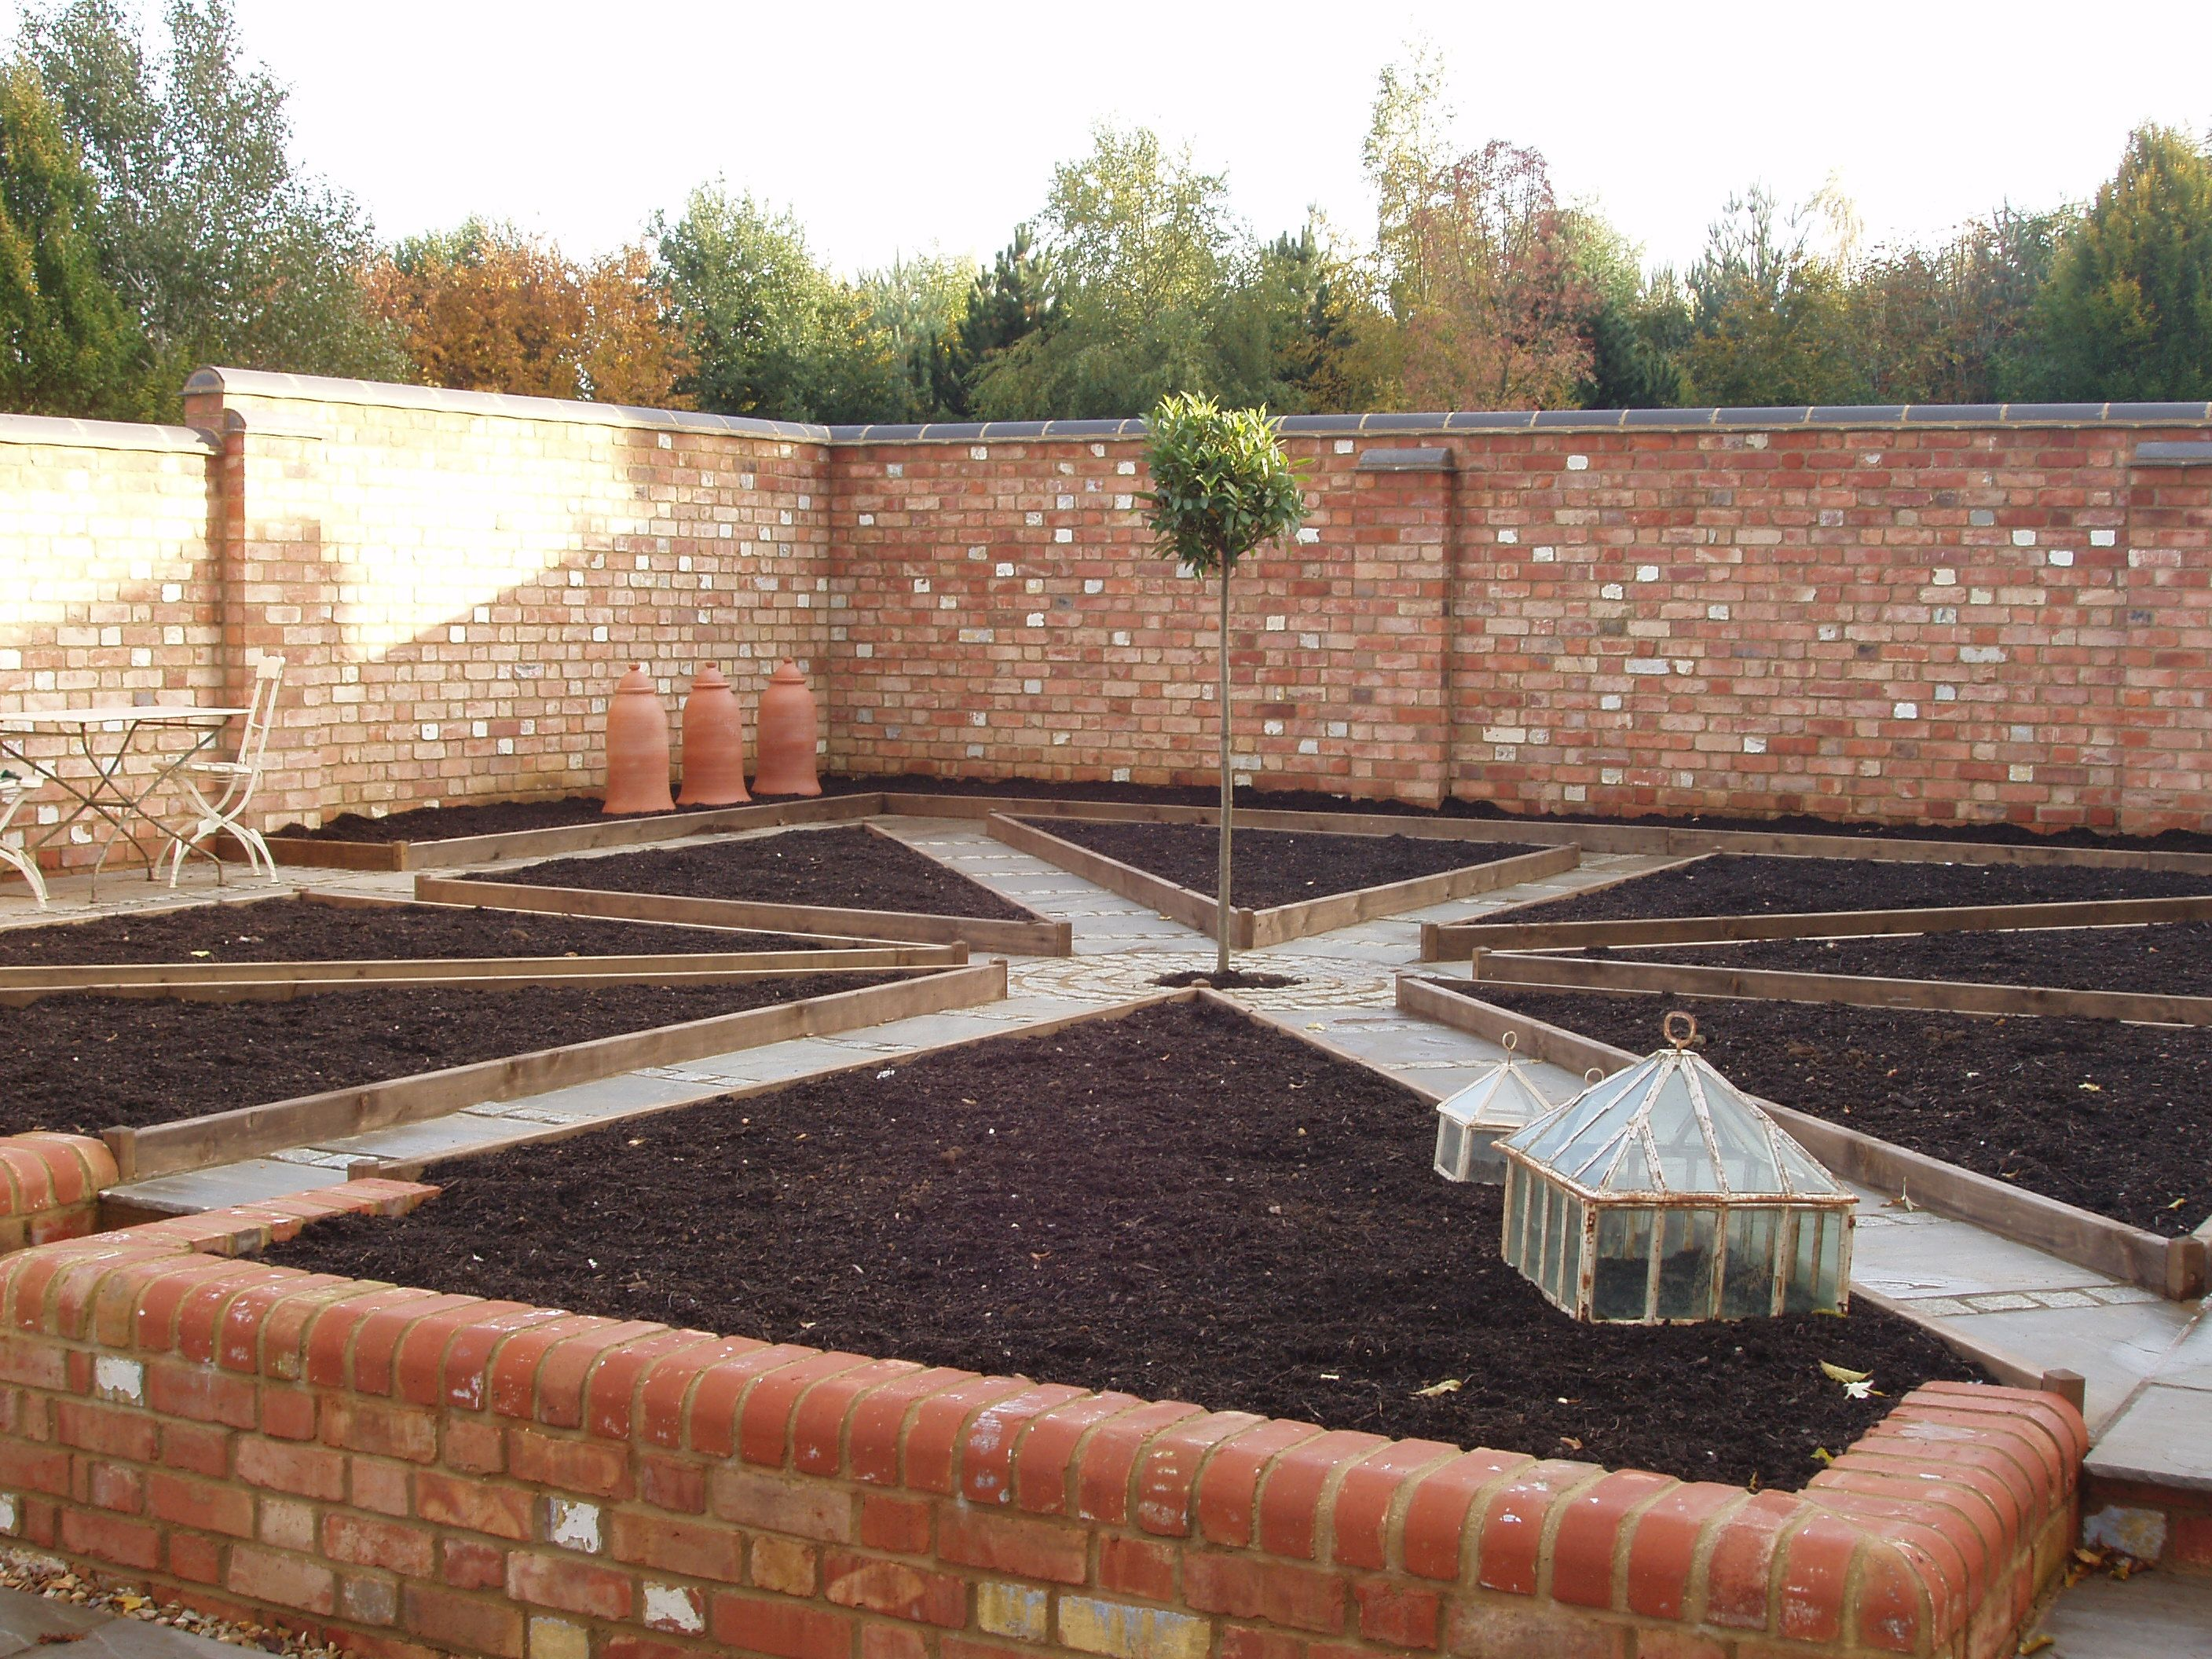 A Productive Walled Kitchen Garden Can You Imagine Walking The Paths With The Planters Full Of Herbs Or Fragrant Flow Kitchen Garden Garden Wall Garden Layout